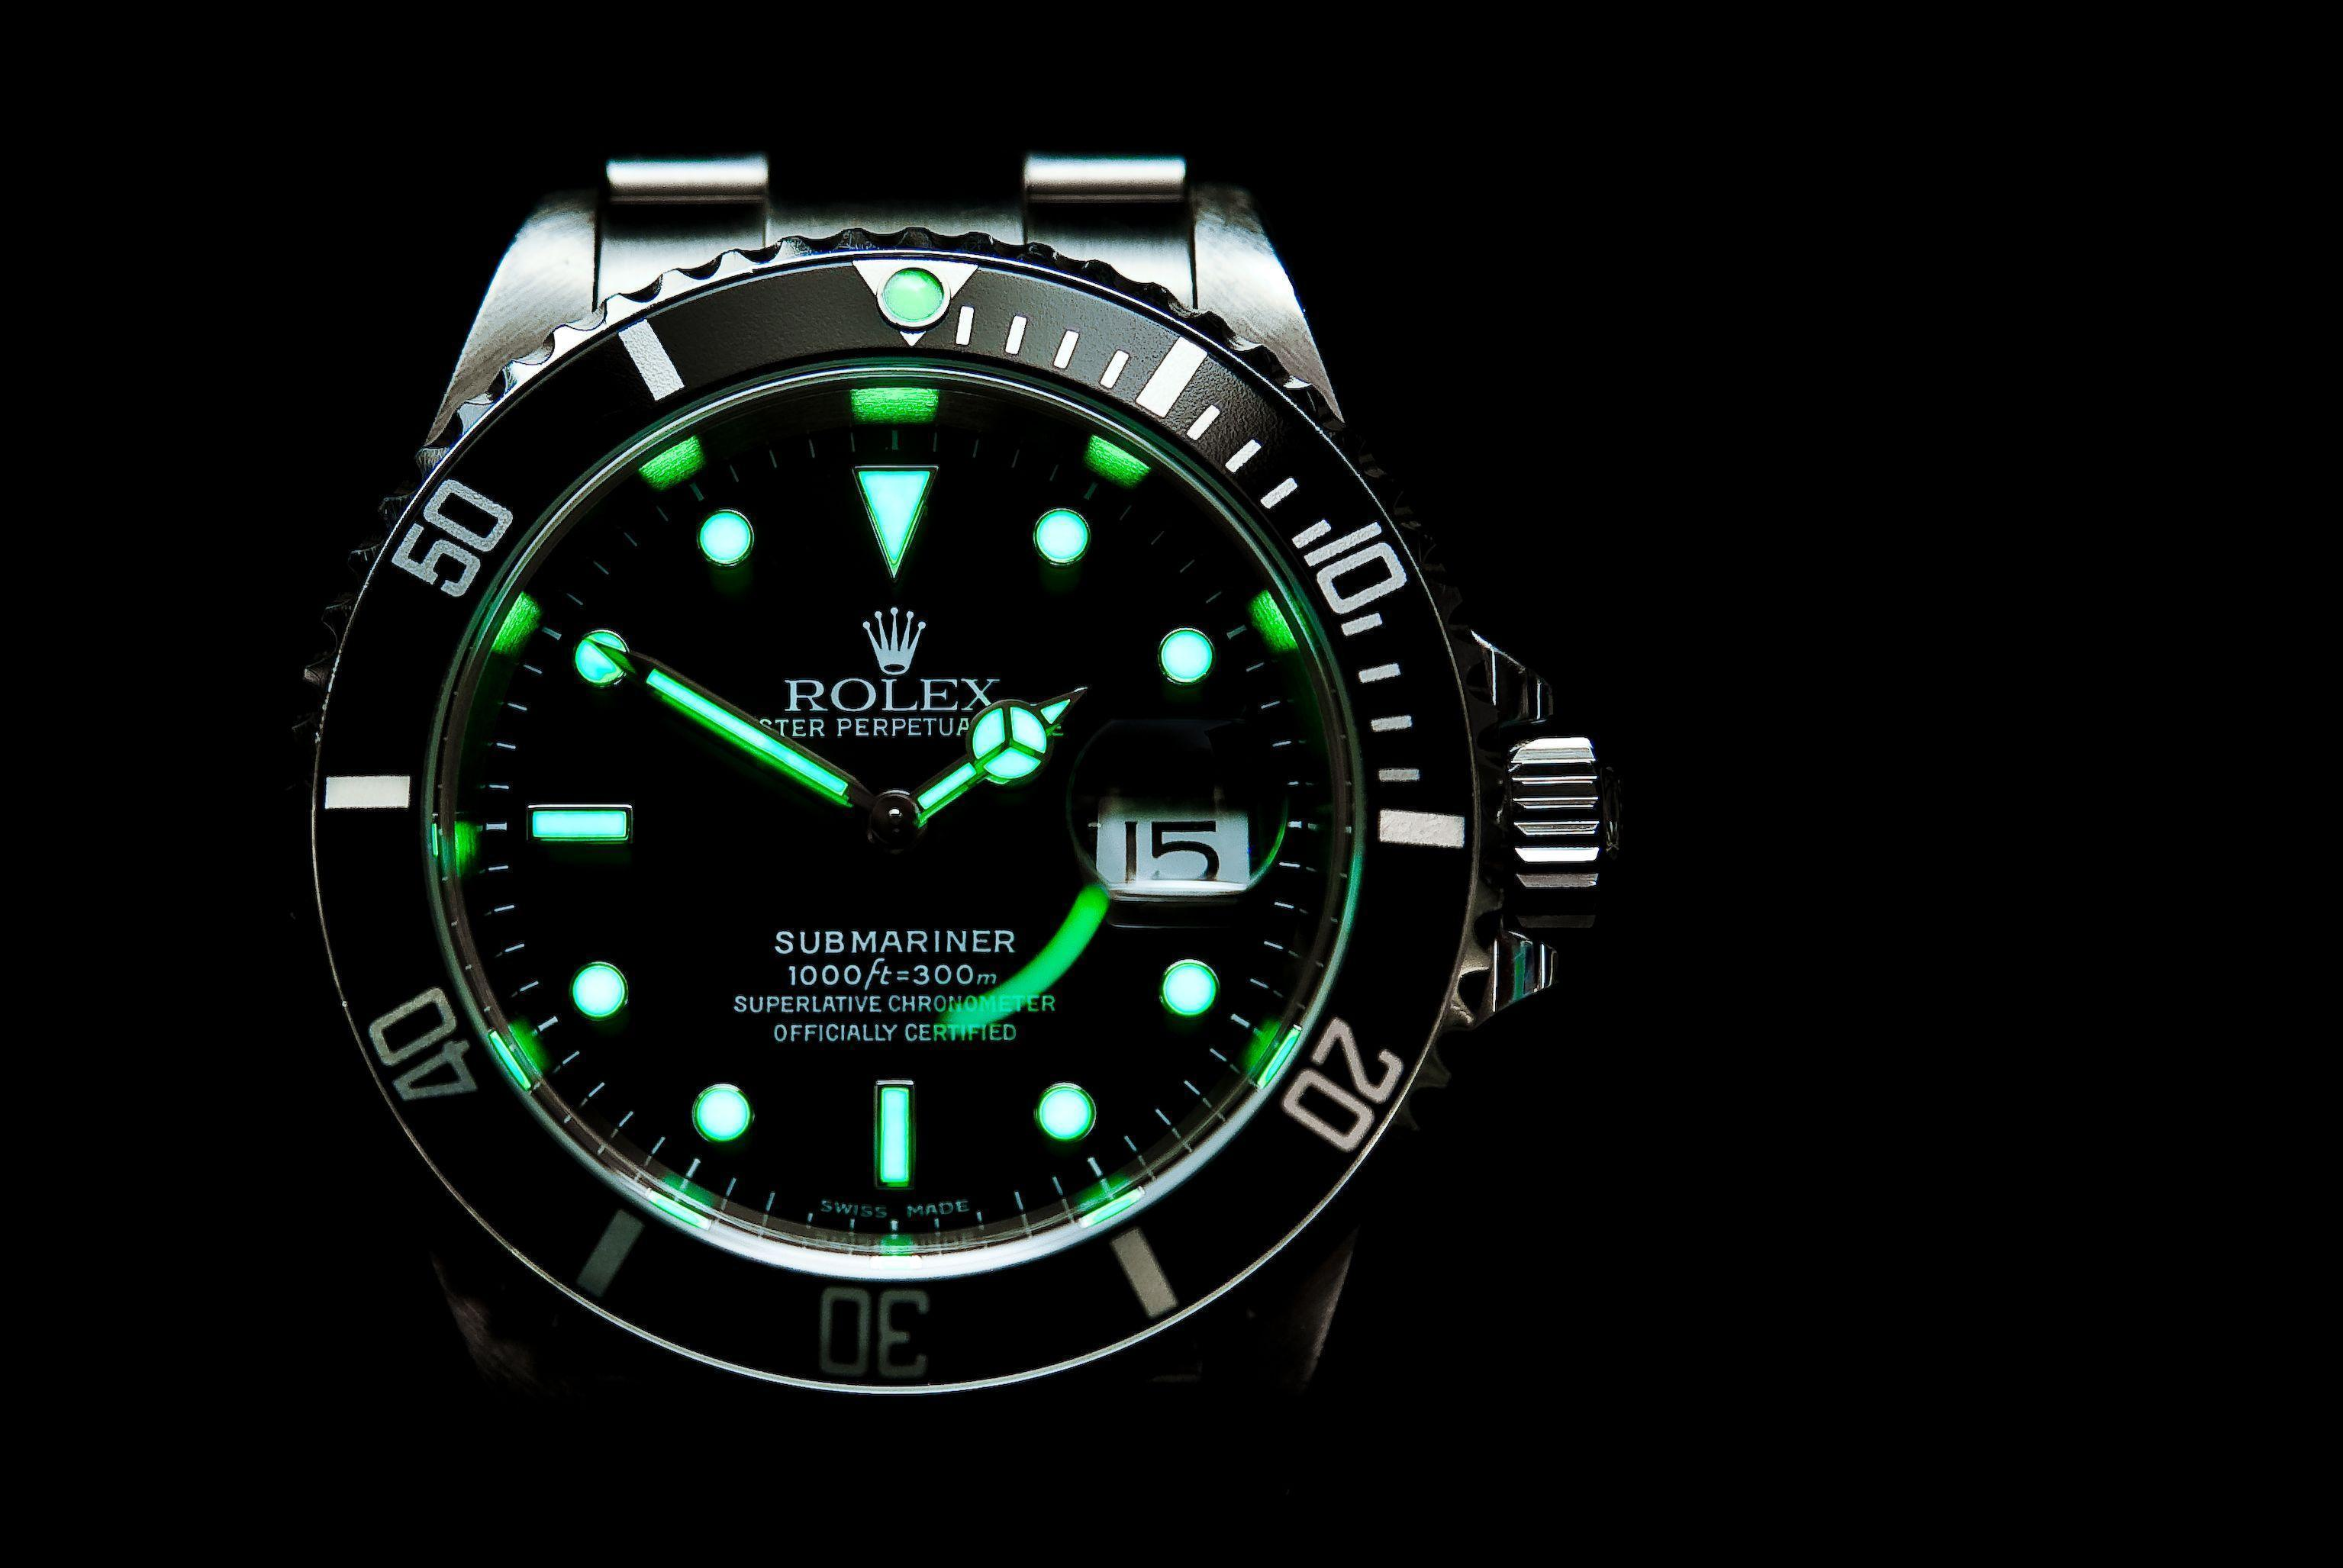 Rolex Hd Wallpapers Wallpaper Cave